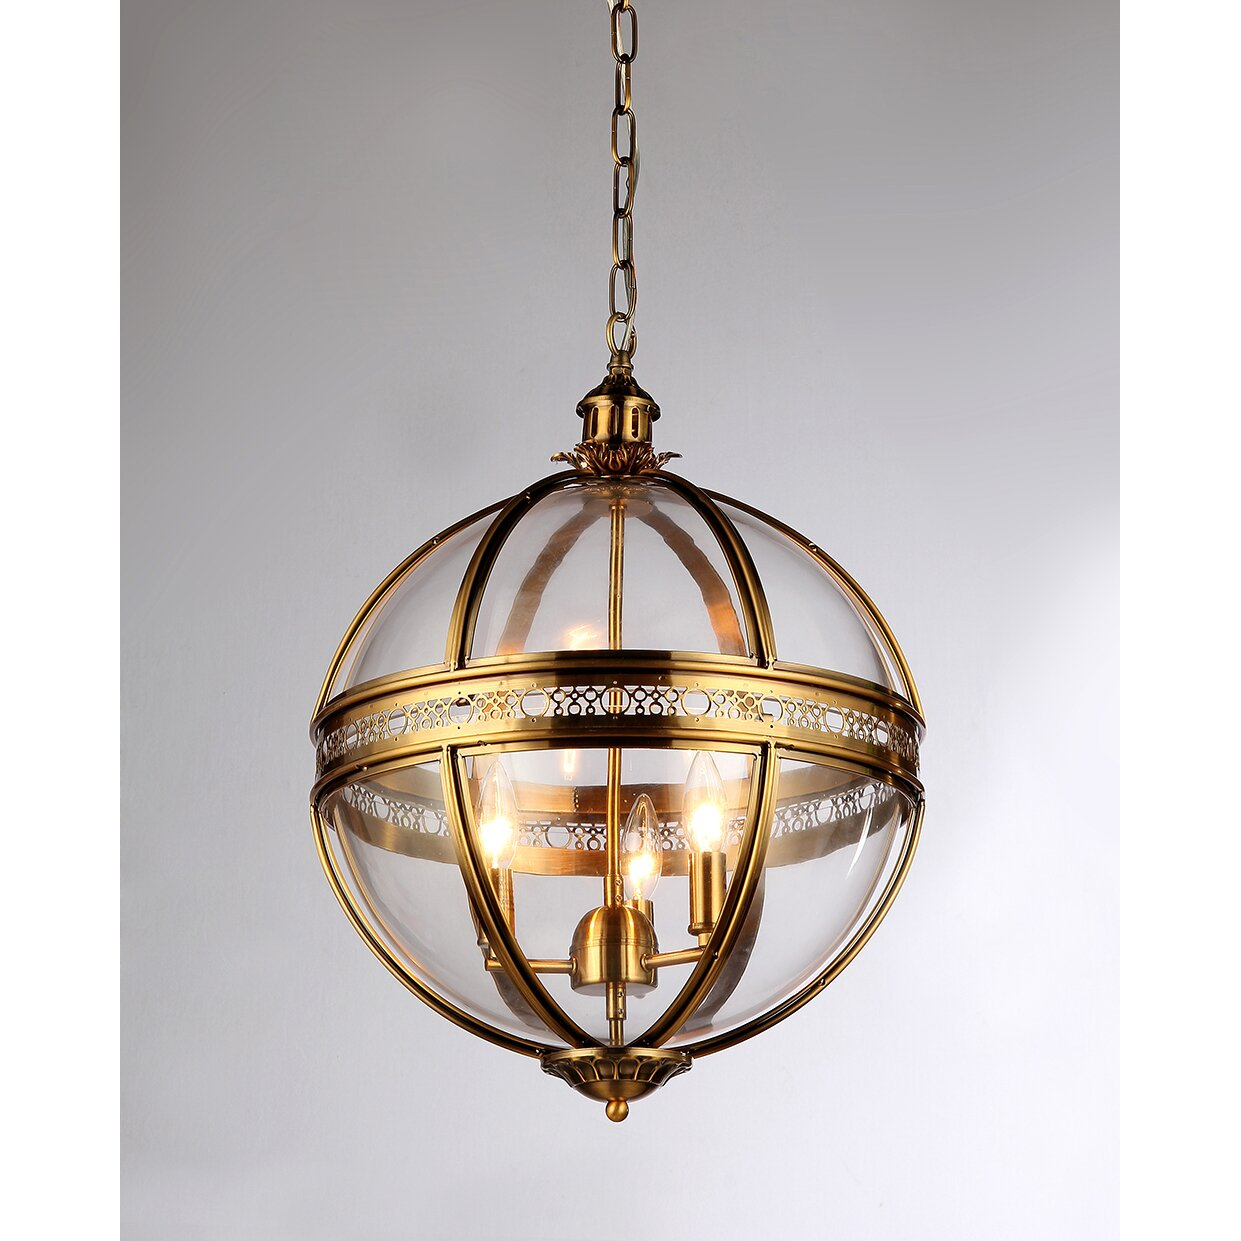 Save. Pretty Darn Good Restoration Hardware Victorian Hotel Pendant Knockoff  ...